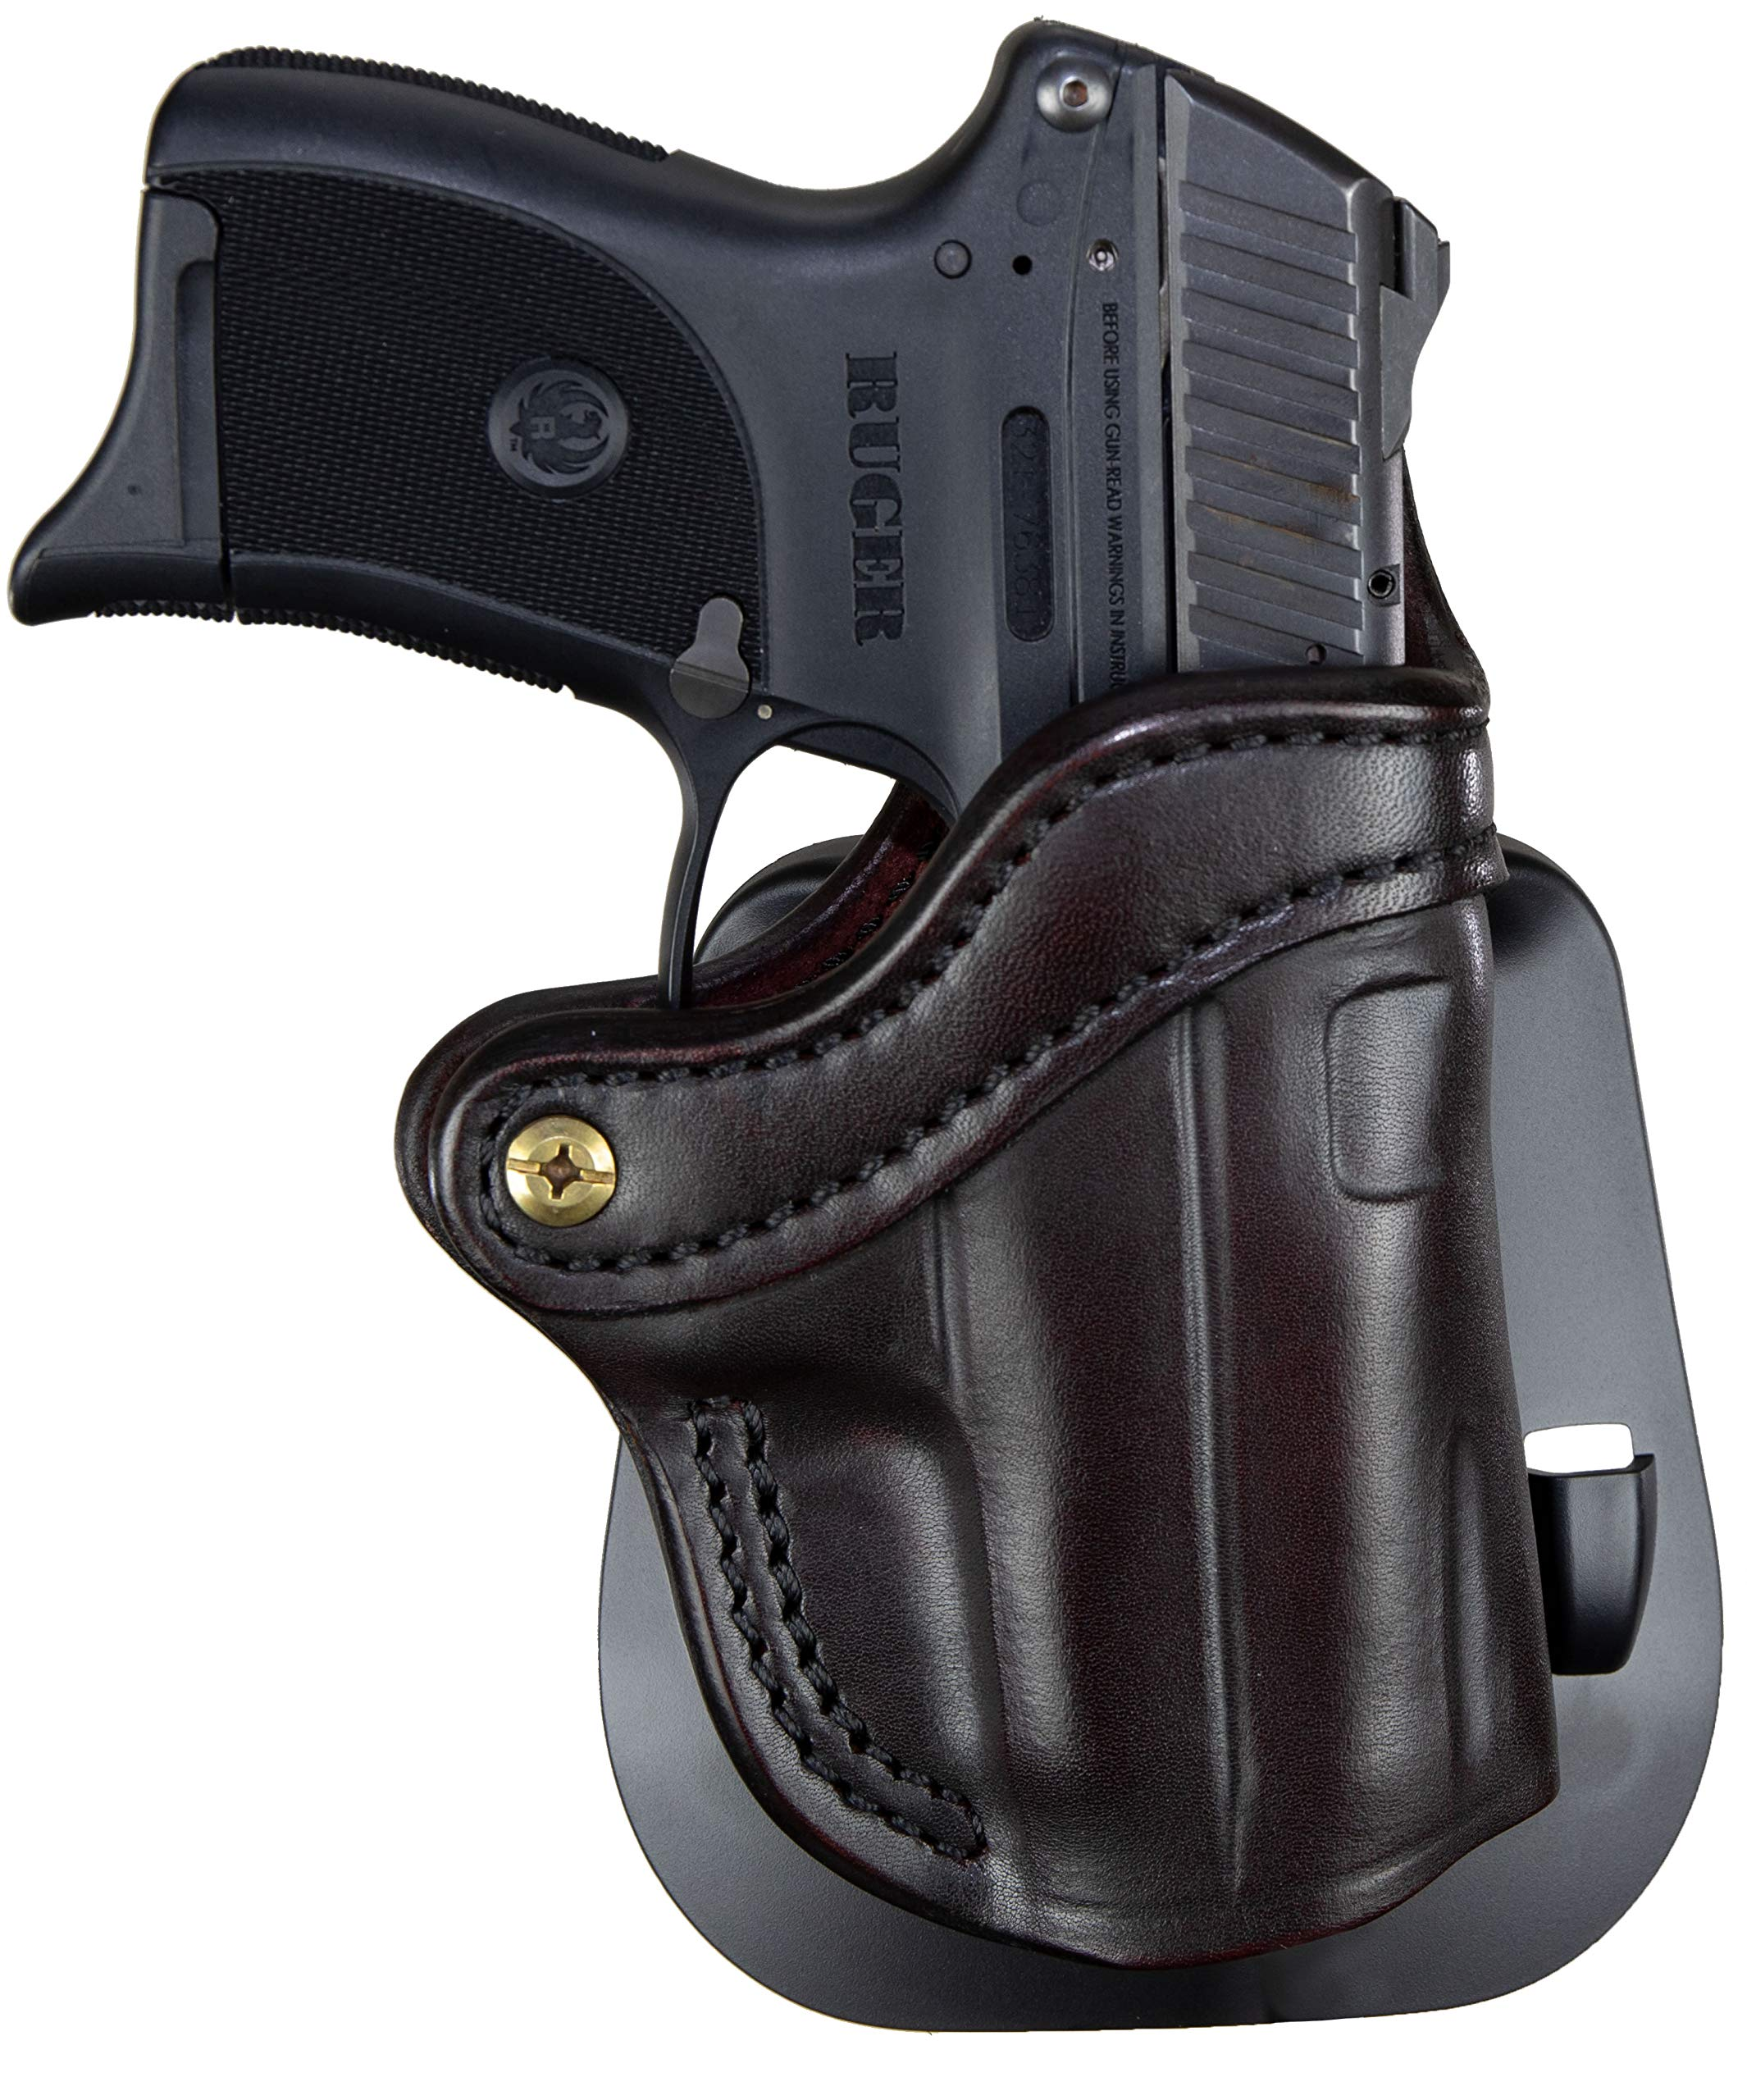 1791 GUNLEATHER Glock 43 Paddle Holster - OWB CCW G43 Holster - Right Handed Leather Gun Holster for Belts - Glock 43, Ruger LC9 and Ruger SR22